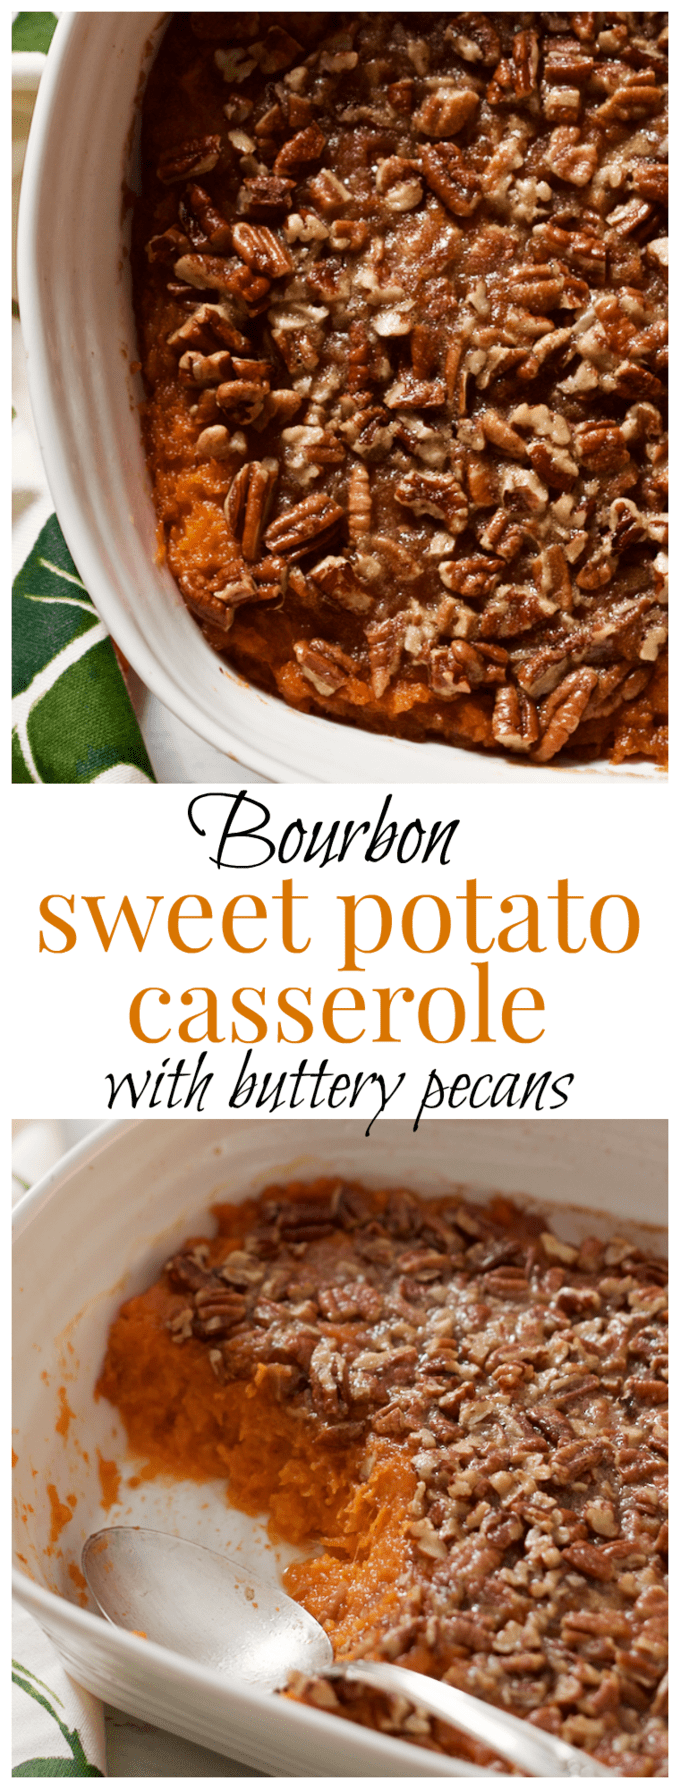 Bourbon sweet potato casserole with a buttery pecan crust - lightened up with a little less sugar and butter for a perfectly balanced holiday side dish! | FamilyFoodontheTable.com